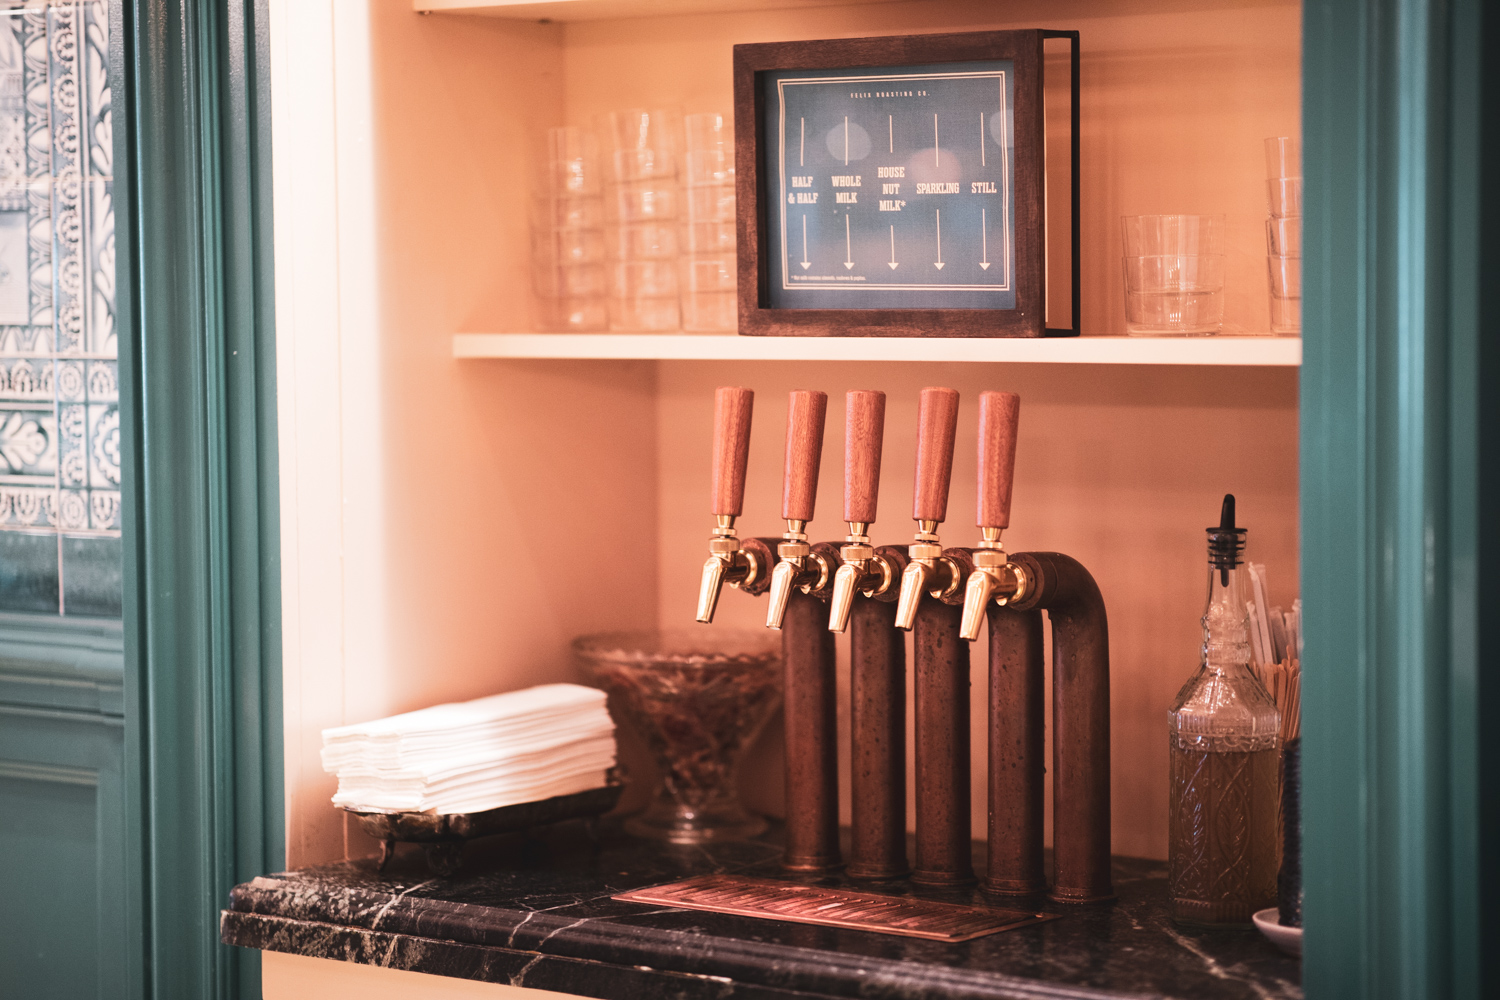 A 5-set tap at Felix Roasting Co., from which customers can dispense half & half, whole milk, house nut milk, sparkling water, or still water.